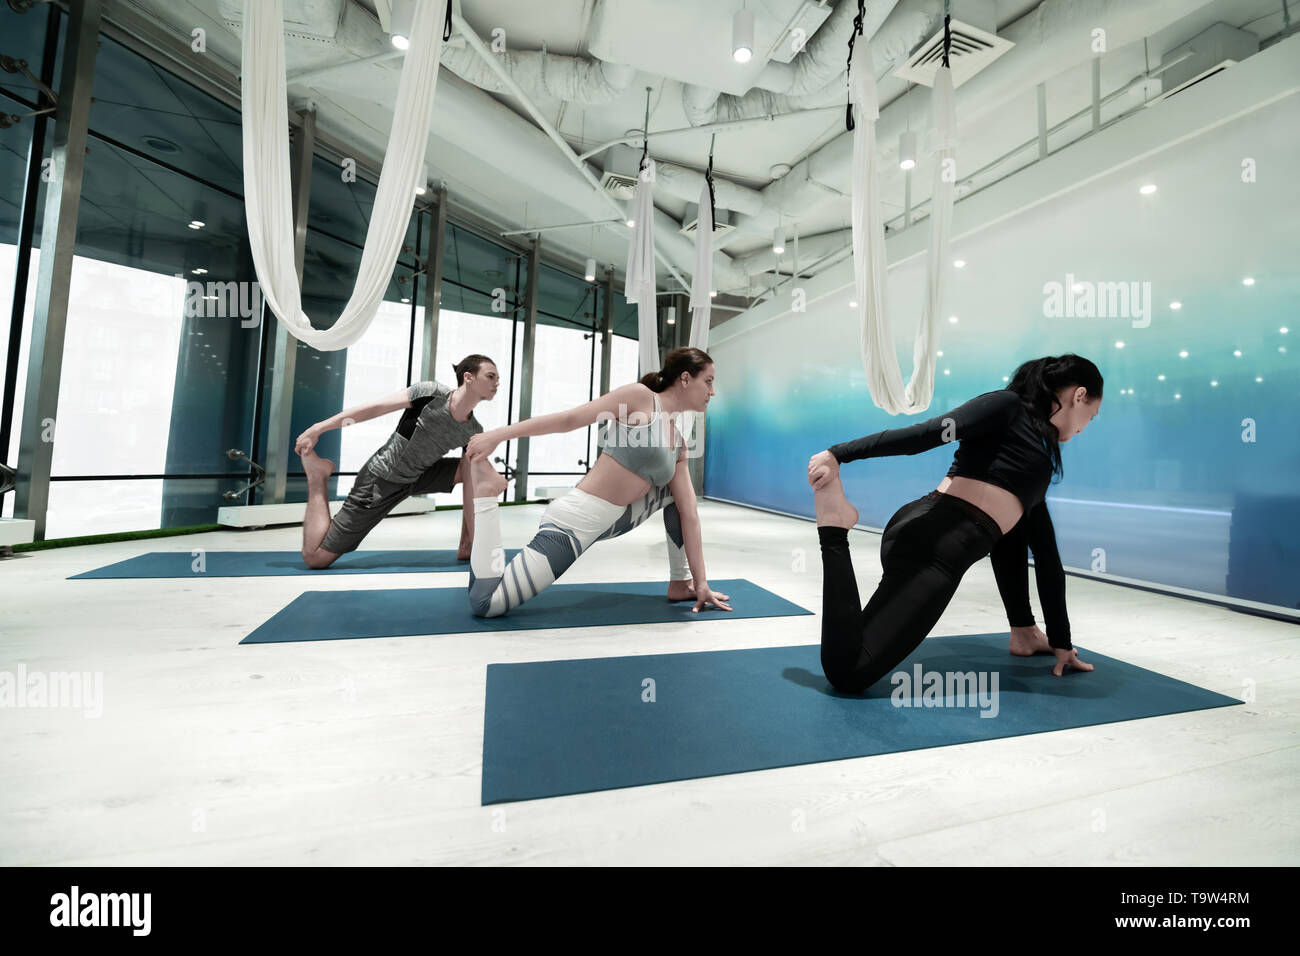 Women and man holding their foot while stretching doing yoga - Stock Image